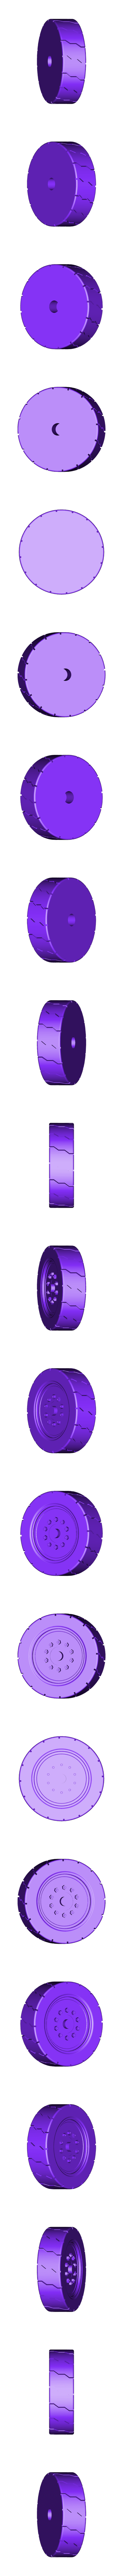 rear_wheels_x2_black.stl Download free STL file Fenwick Linde H40 forklift with moving parts • 3D printer design, xTremePower